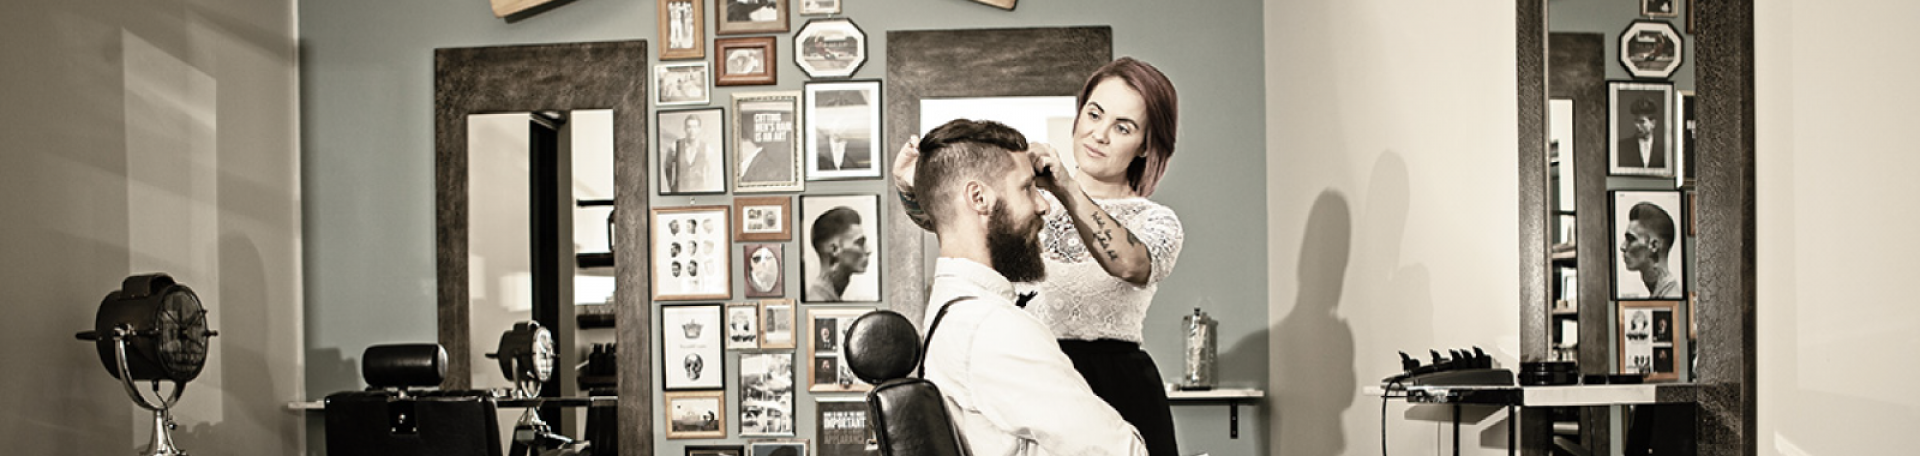 Barbering Vacancies